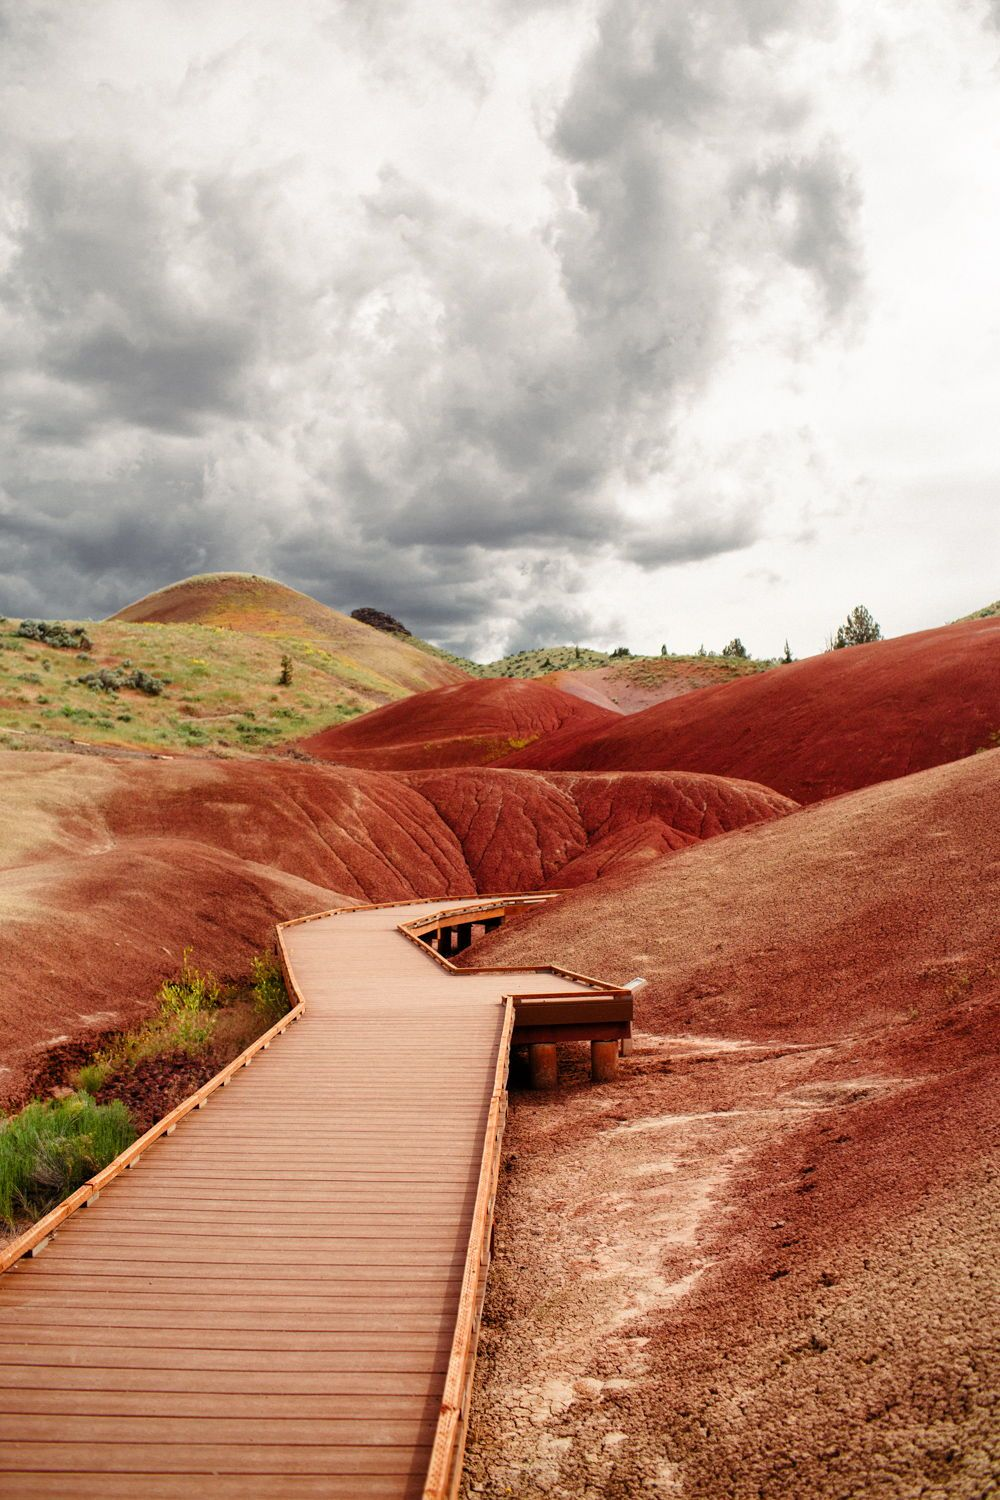 A Guide To The Painted Hills Oregon: Need To Know Travel Tips + Map